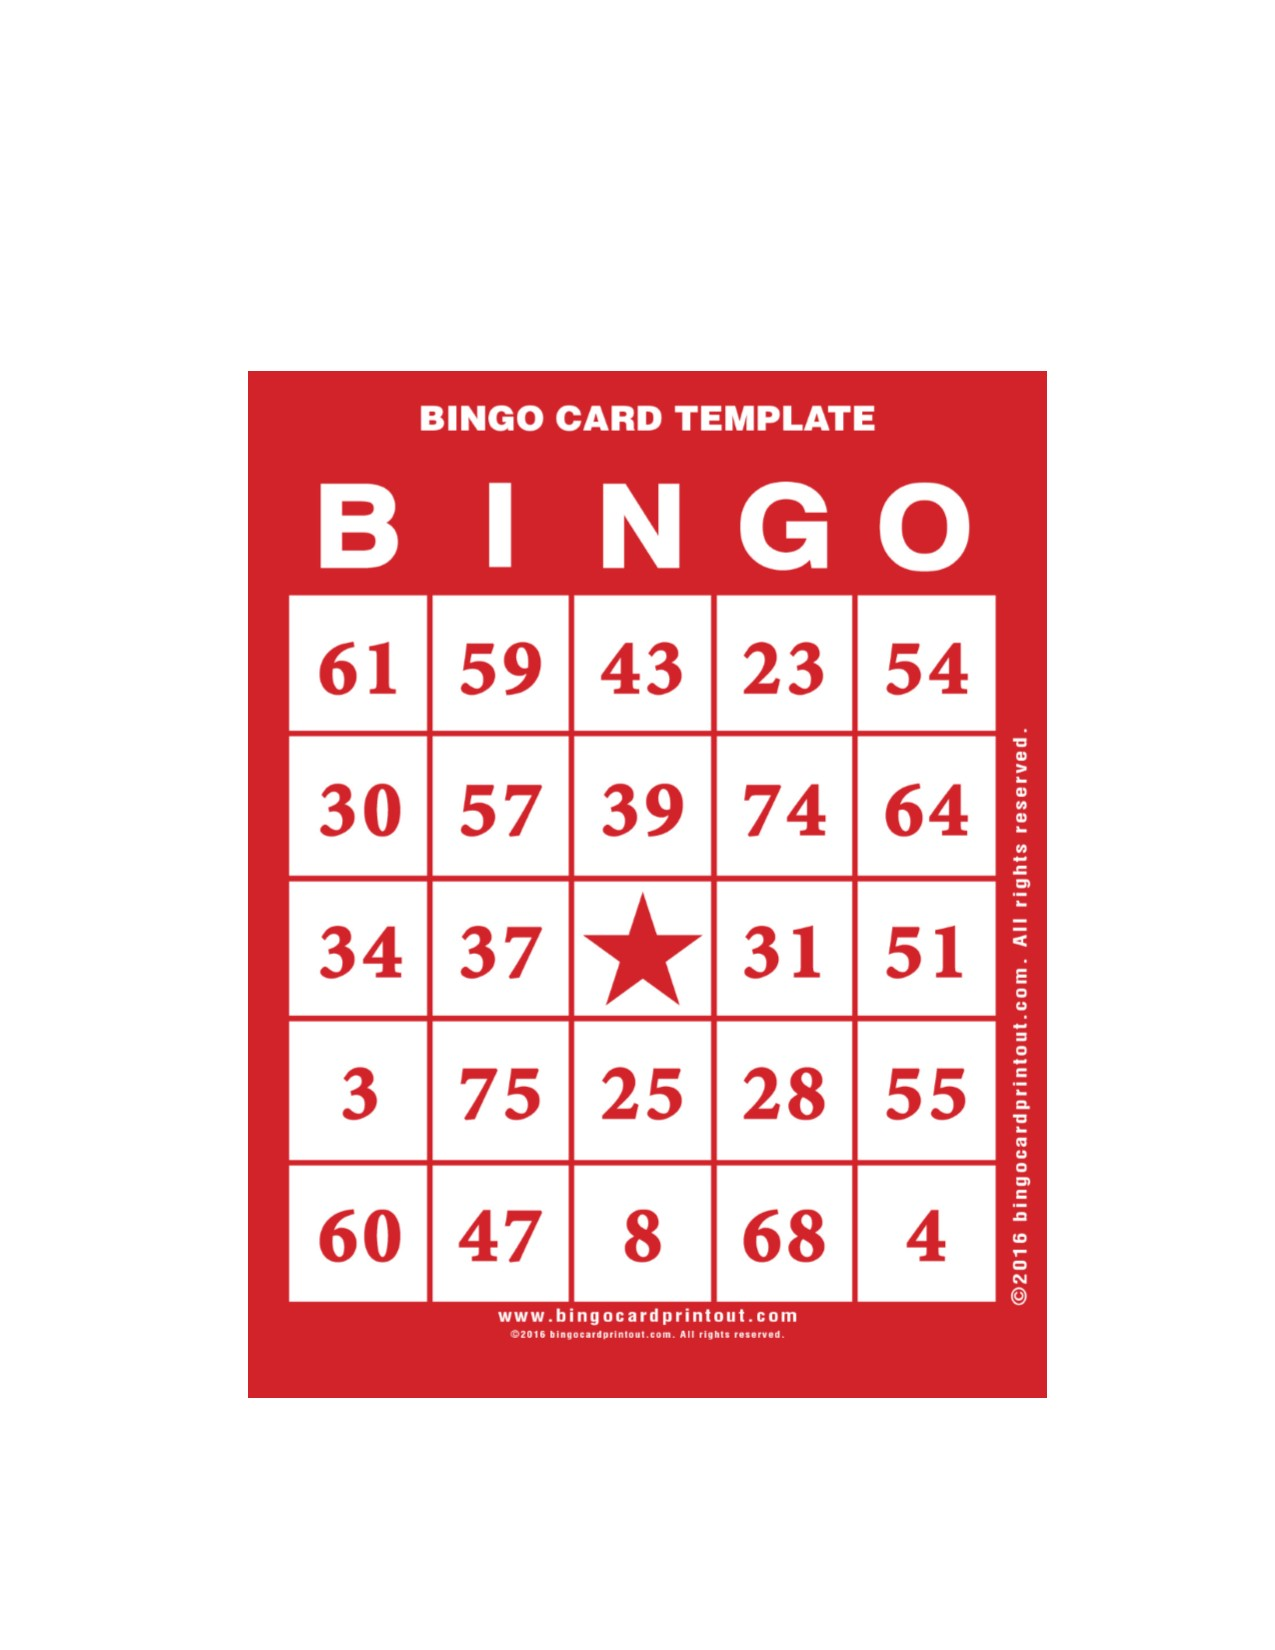 Bingo Card Template | Bingo Card Template Bristol Public Library